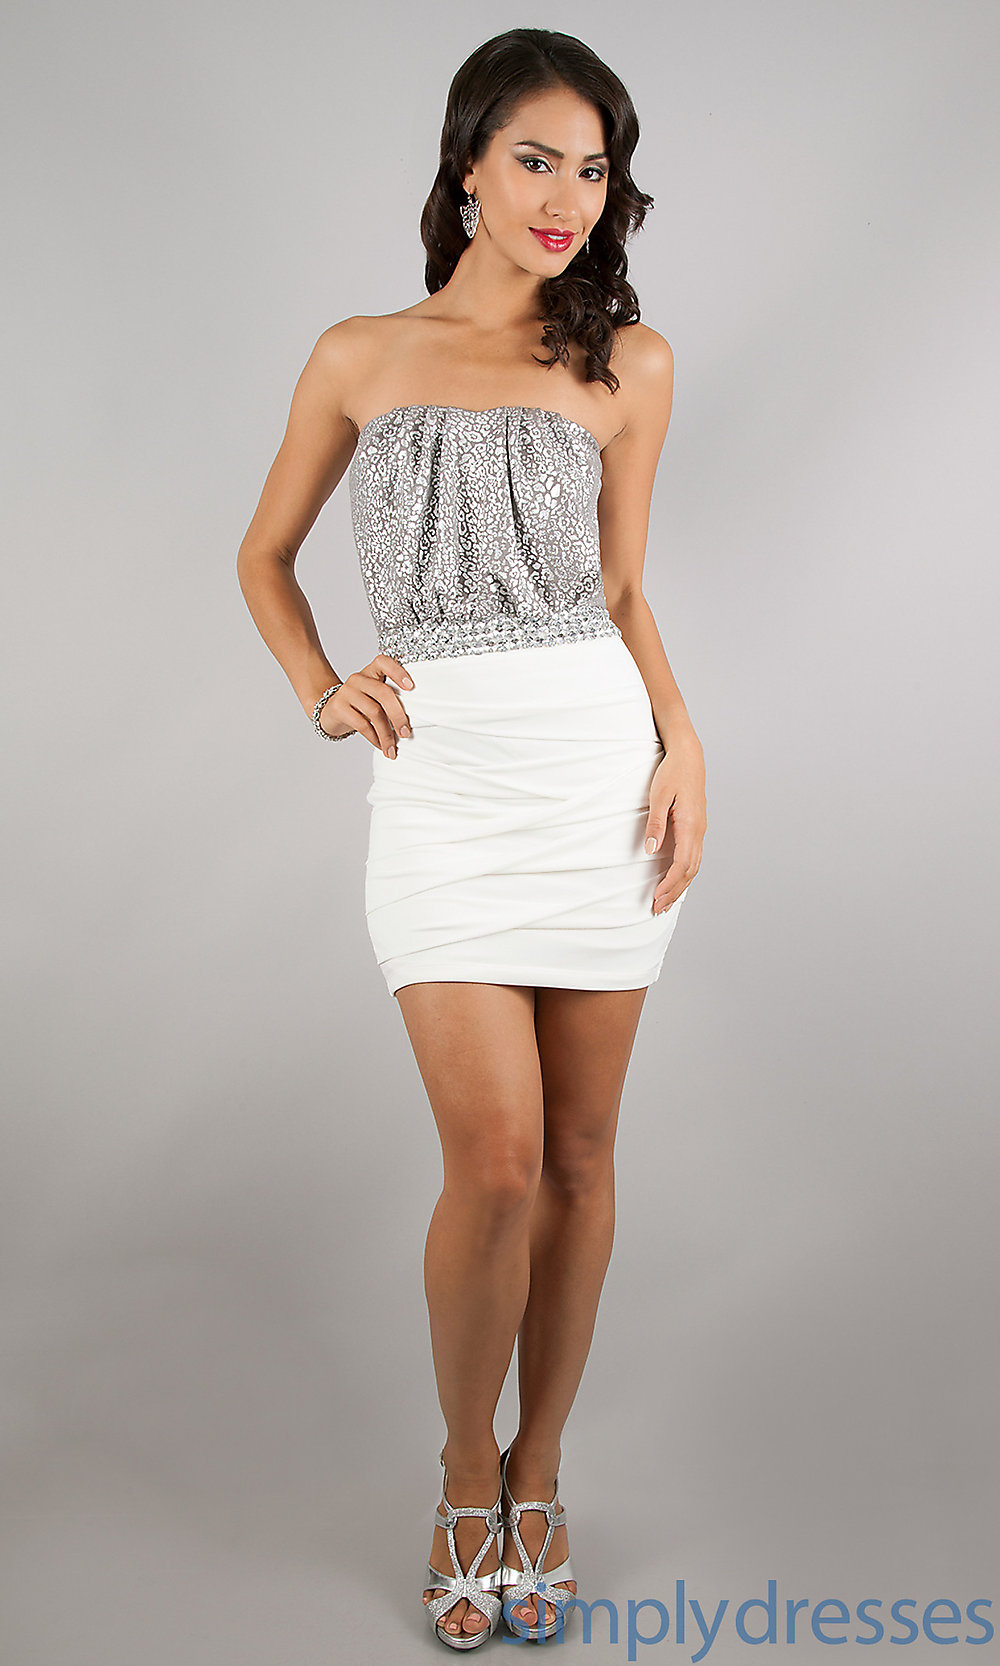 Strapless Short dress Trendy Style, Strapless Sexy dress Shop Online